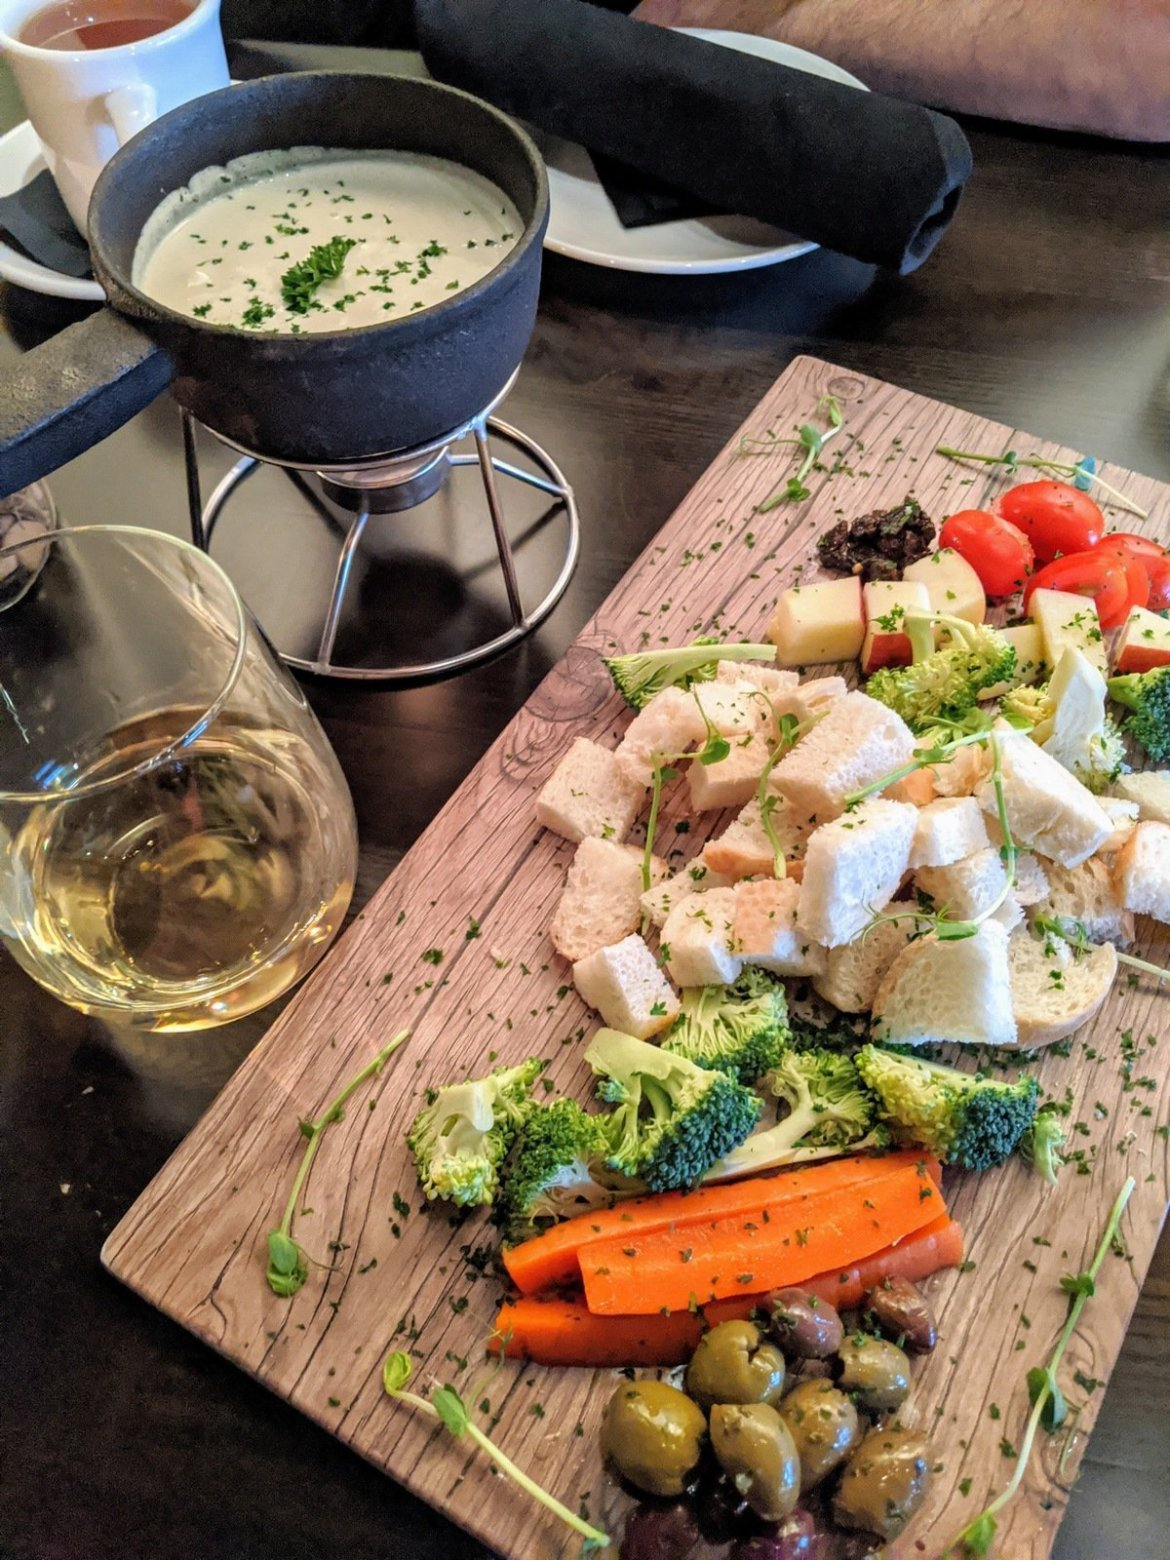 vegan fondue, a glass of wine and a tray of veggies